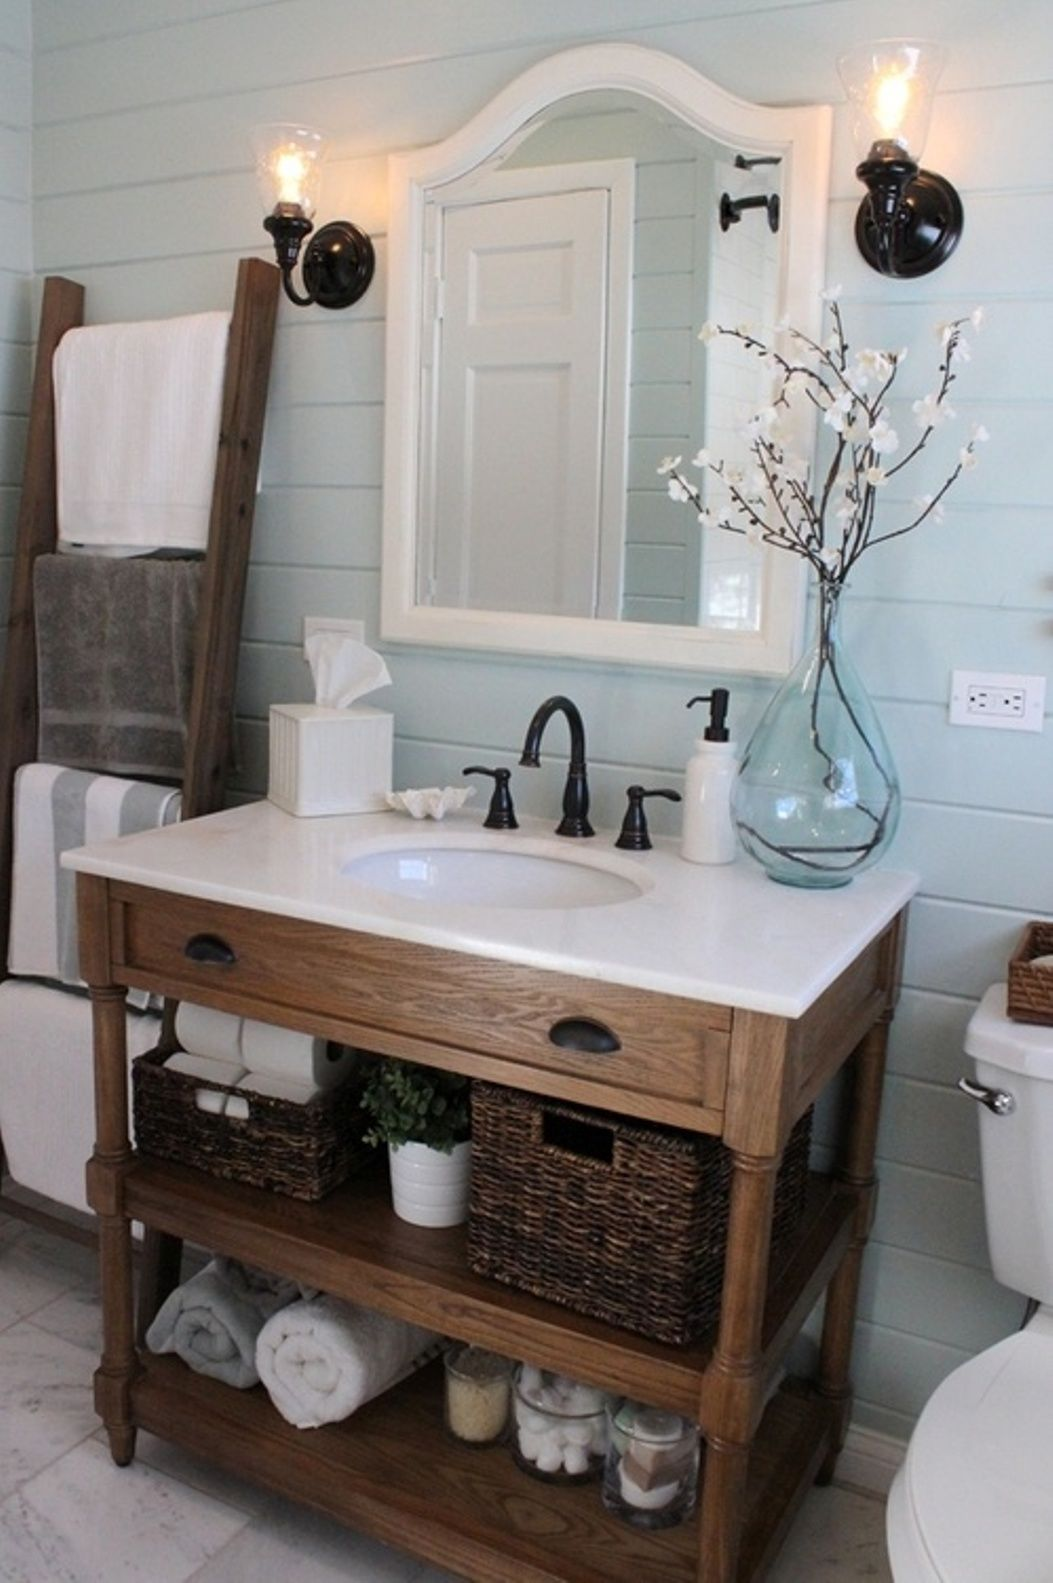 17 inspiring rustic bathroom decor ideas for cozy home for Bathroom decor